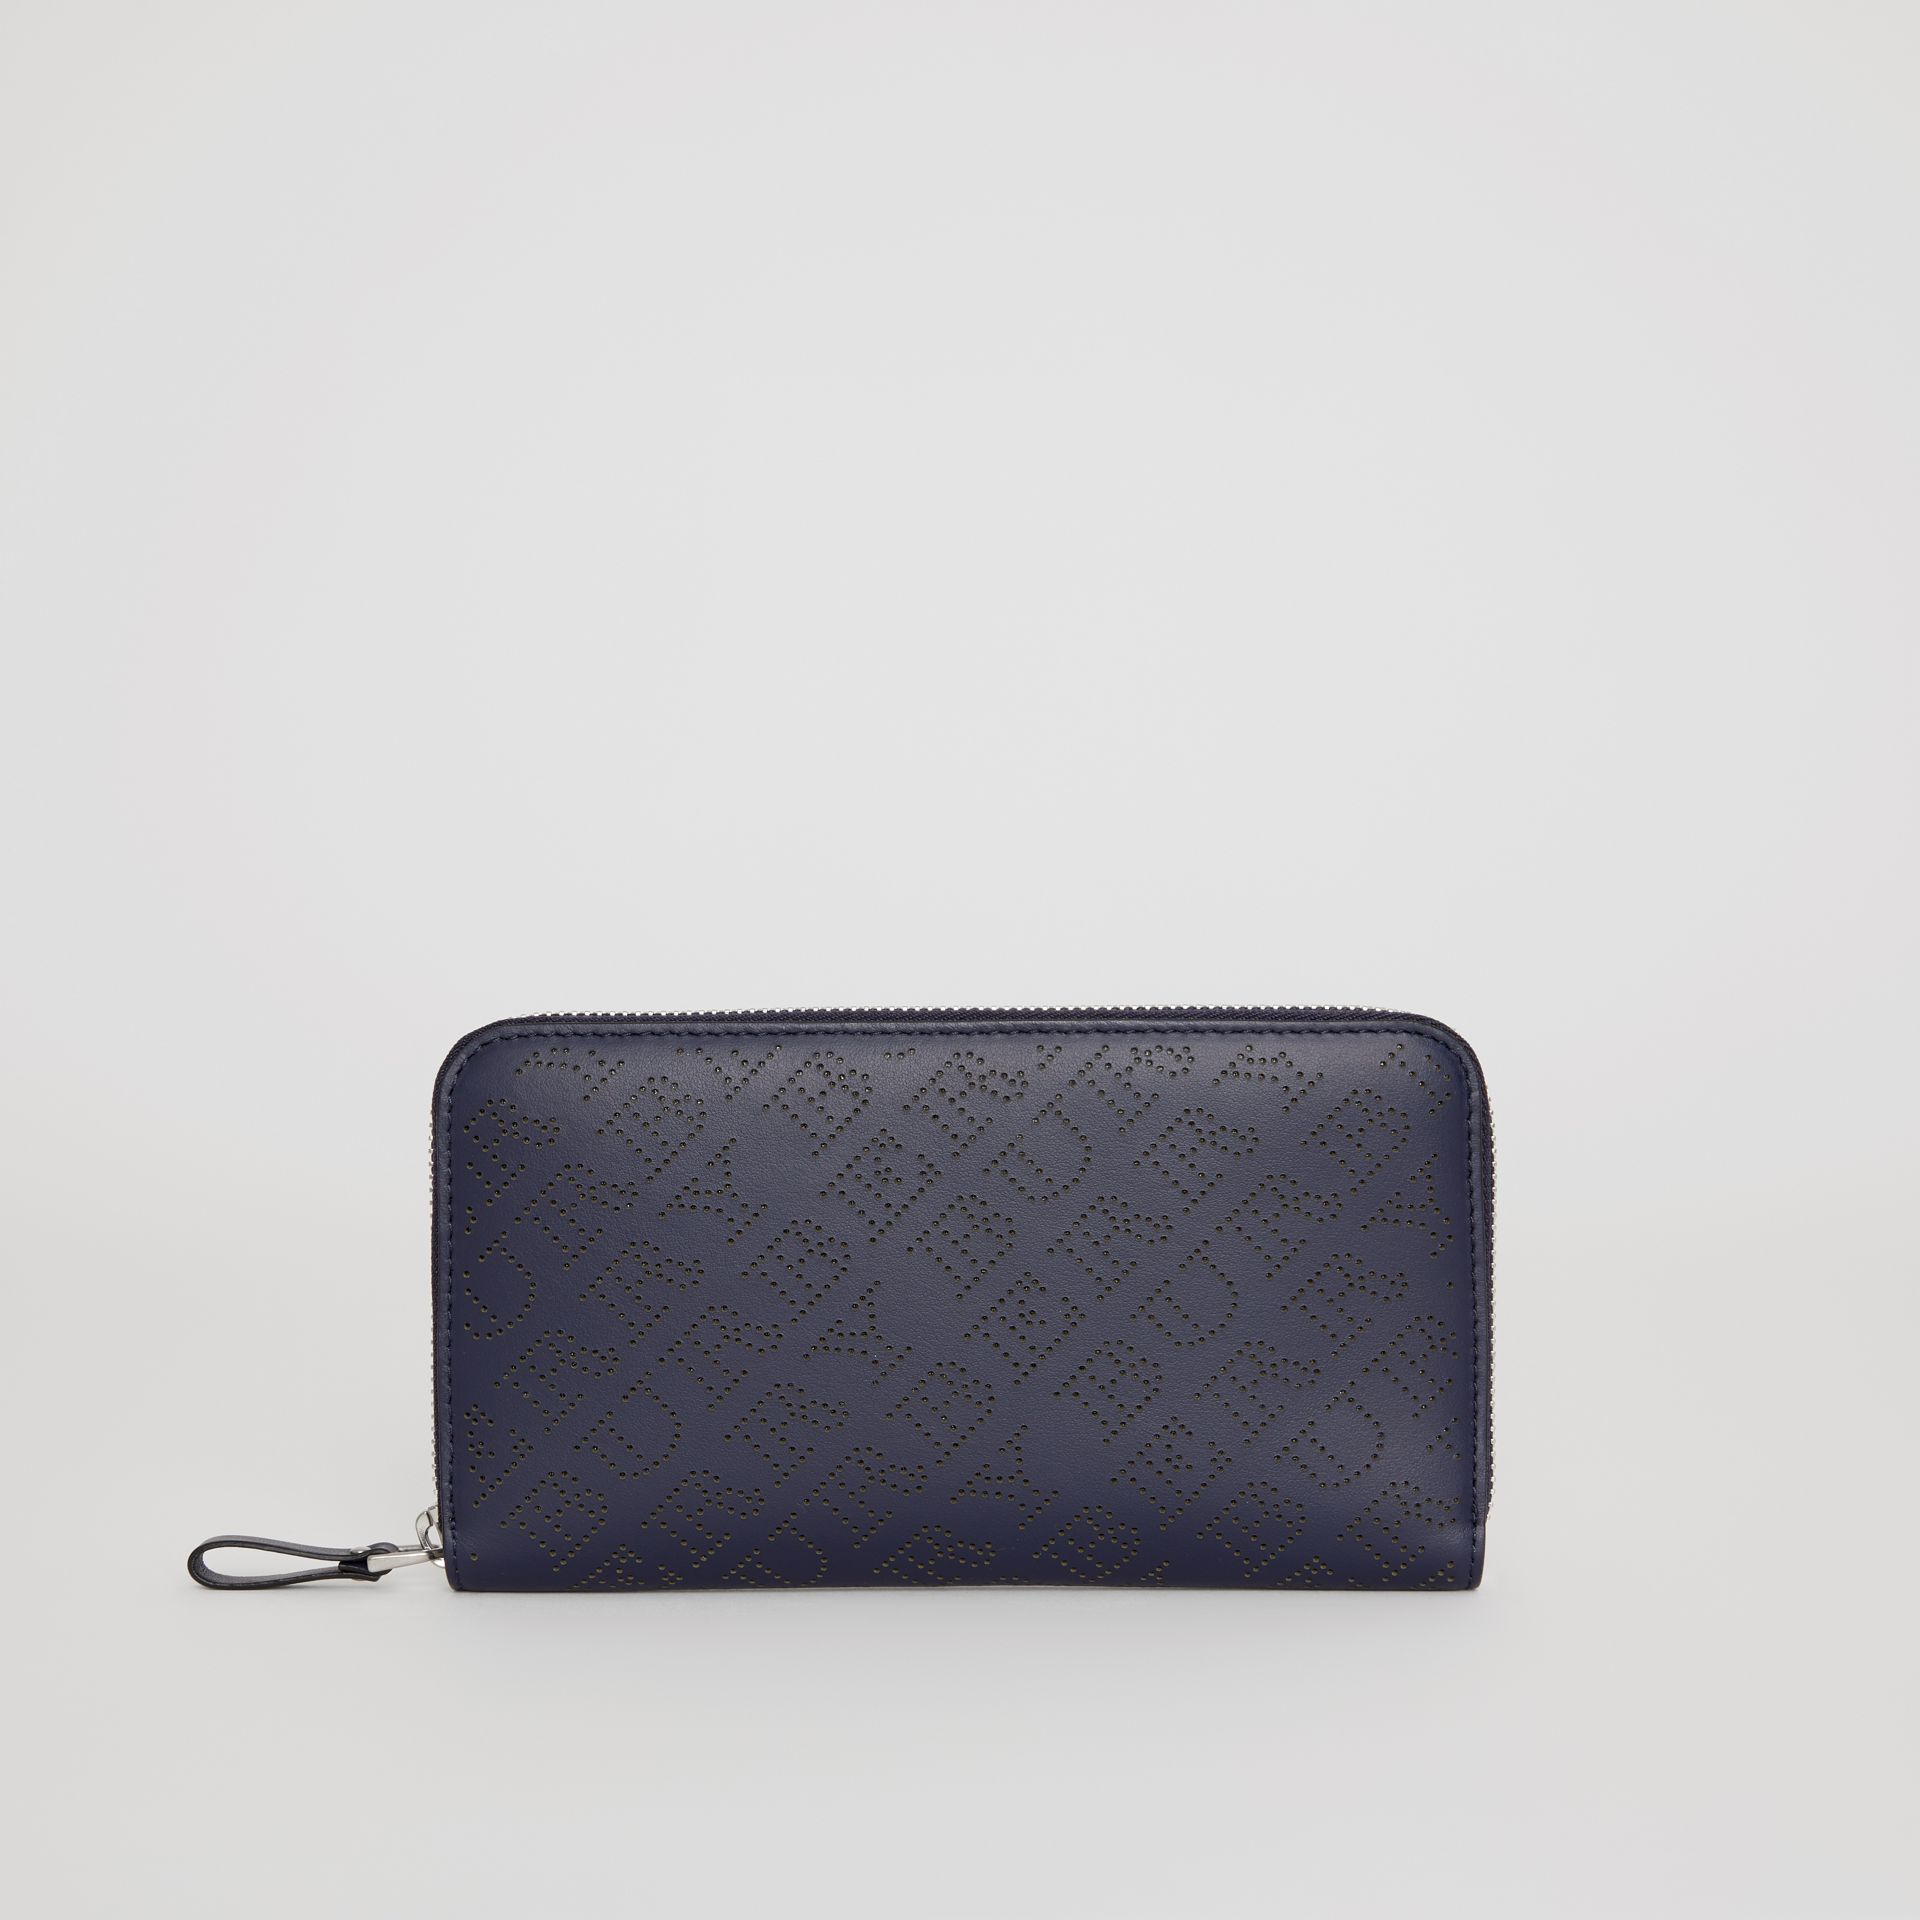 Perforated Leather Ziparound Wallet in Navy - Women | Burberry United Kingdom - gallery image 2